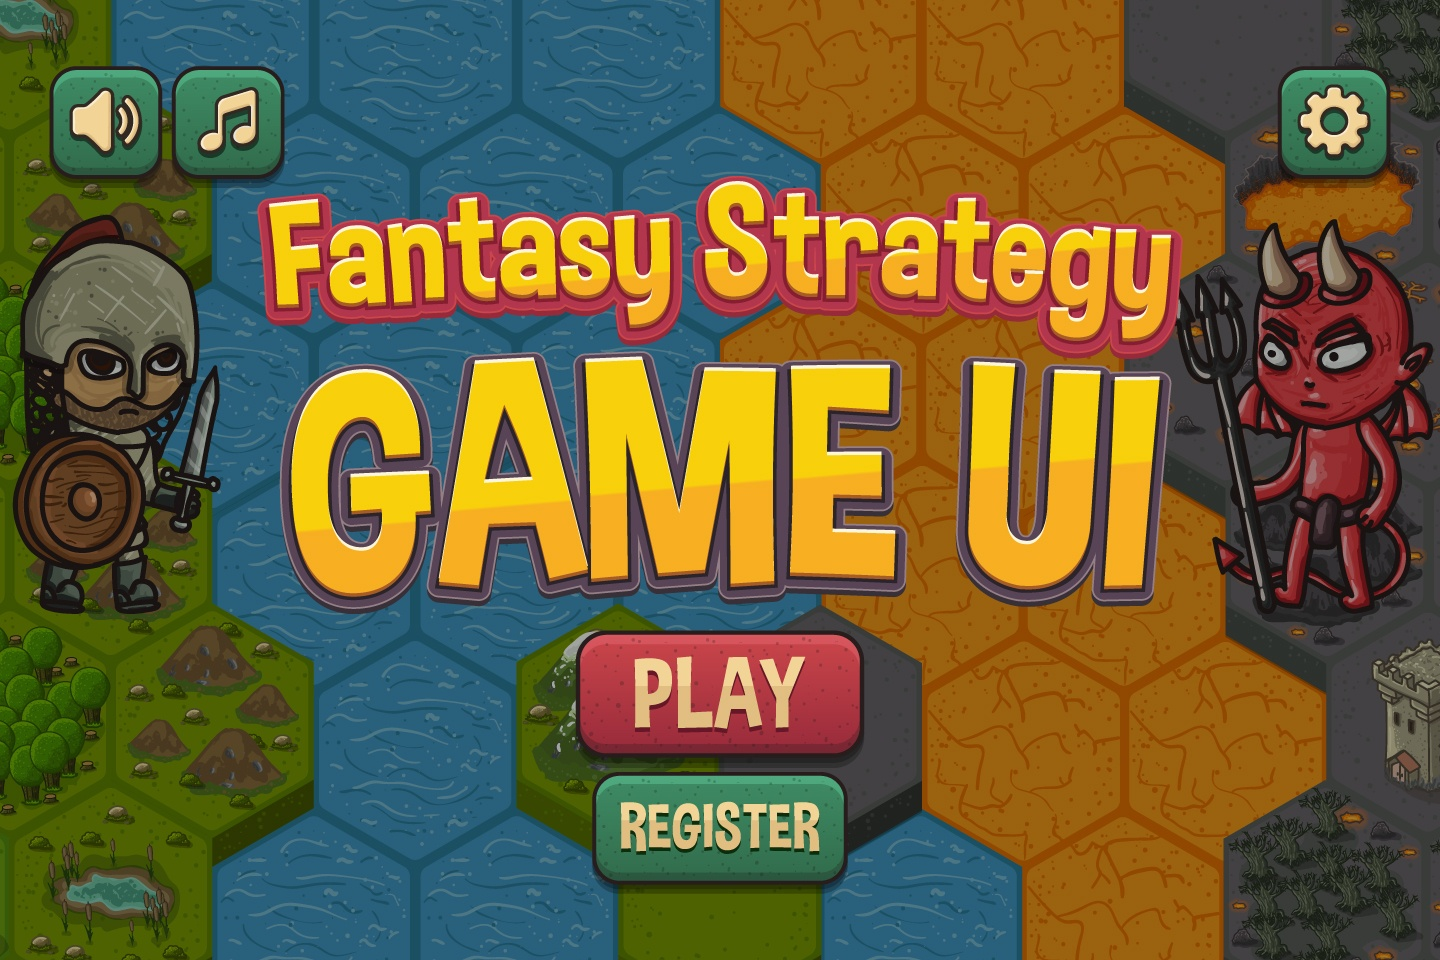 Fantasy Strategy Game UI